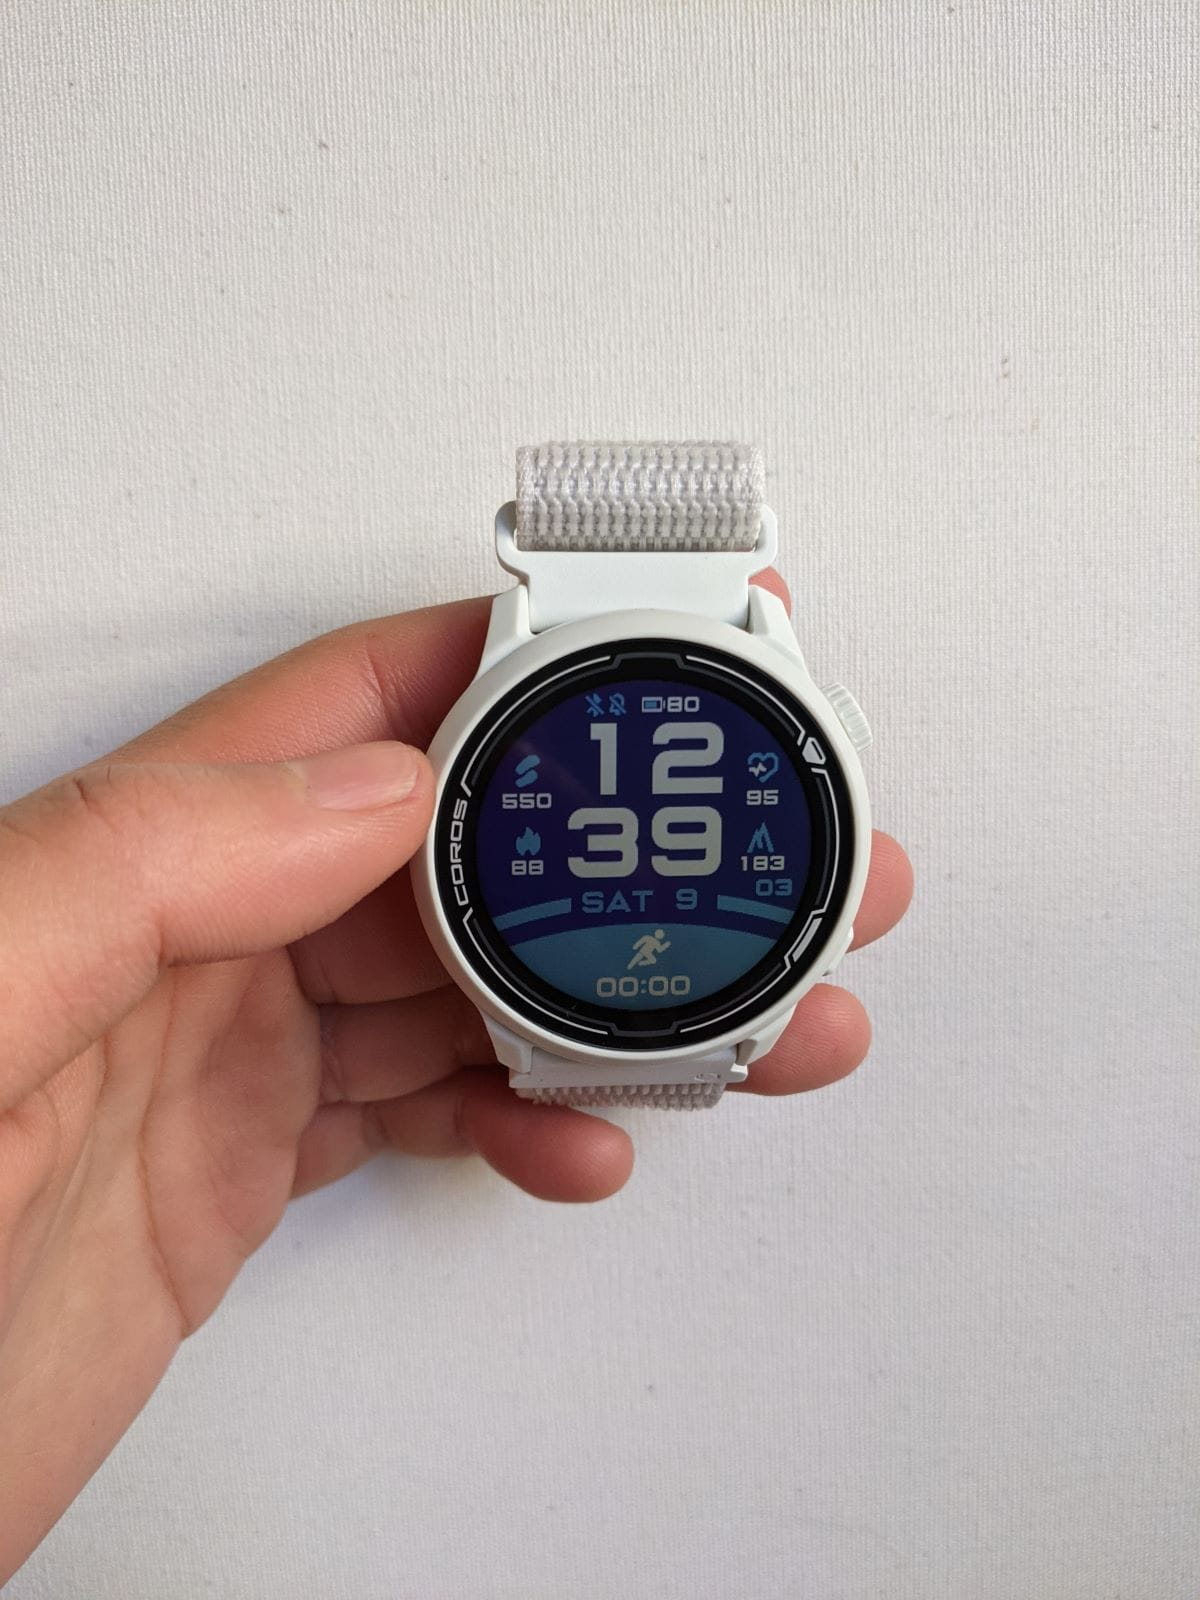 COROS PACE 2 in white with a nylon band